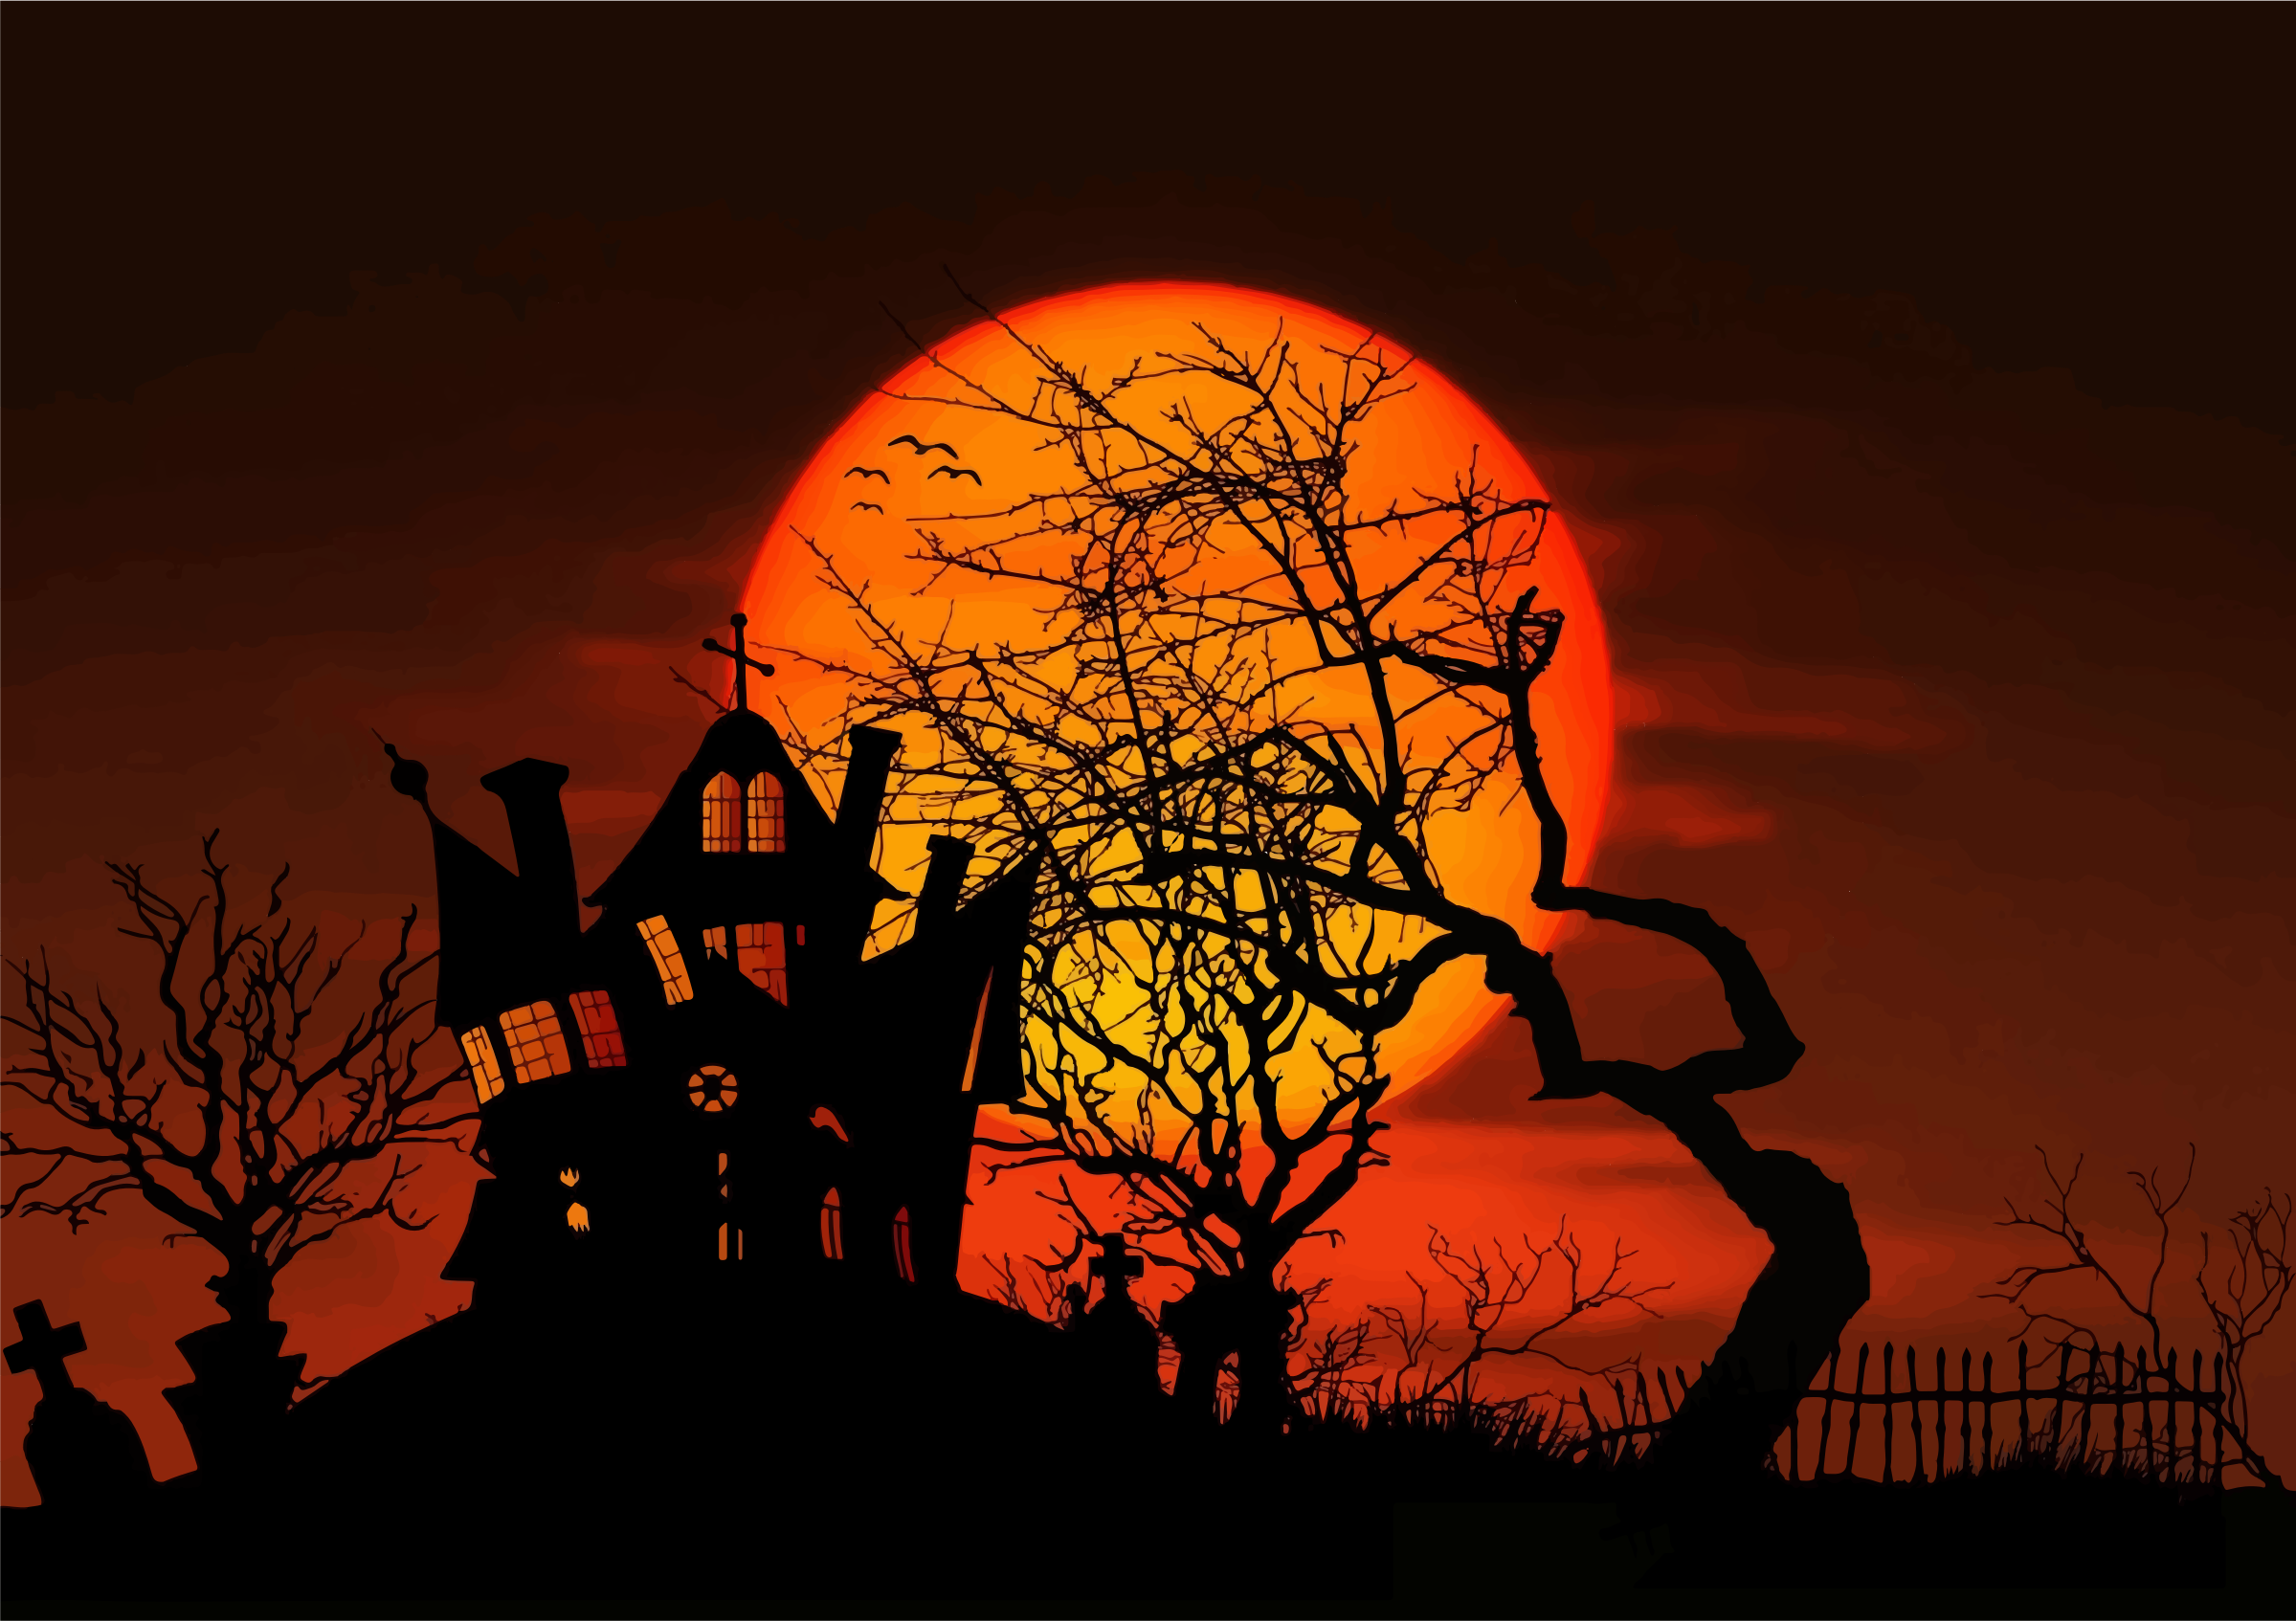 Haunted clipart silhouette #11